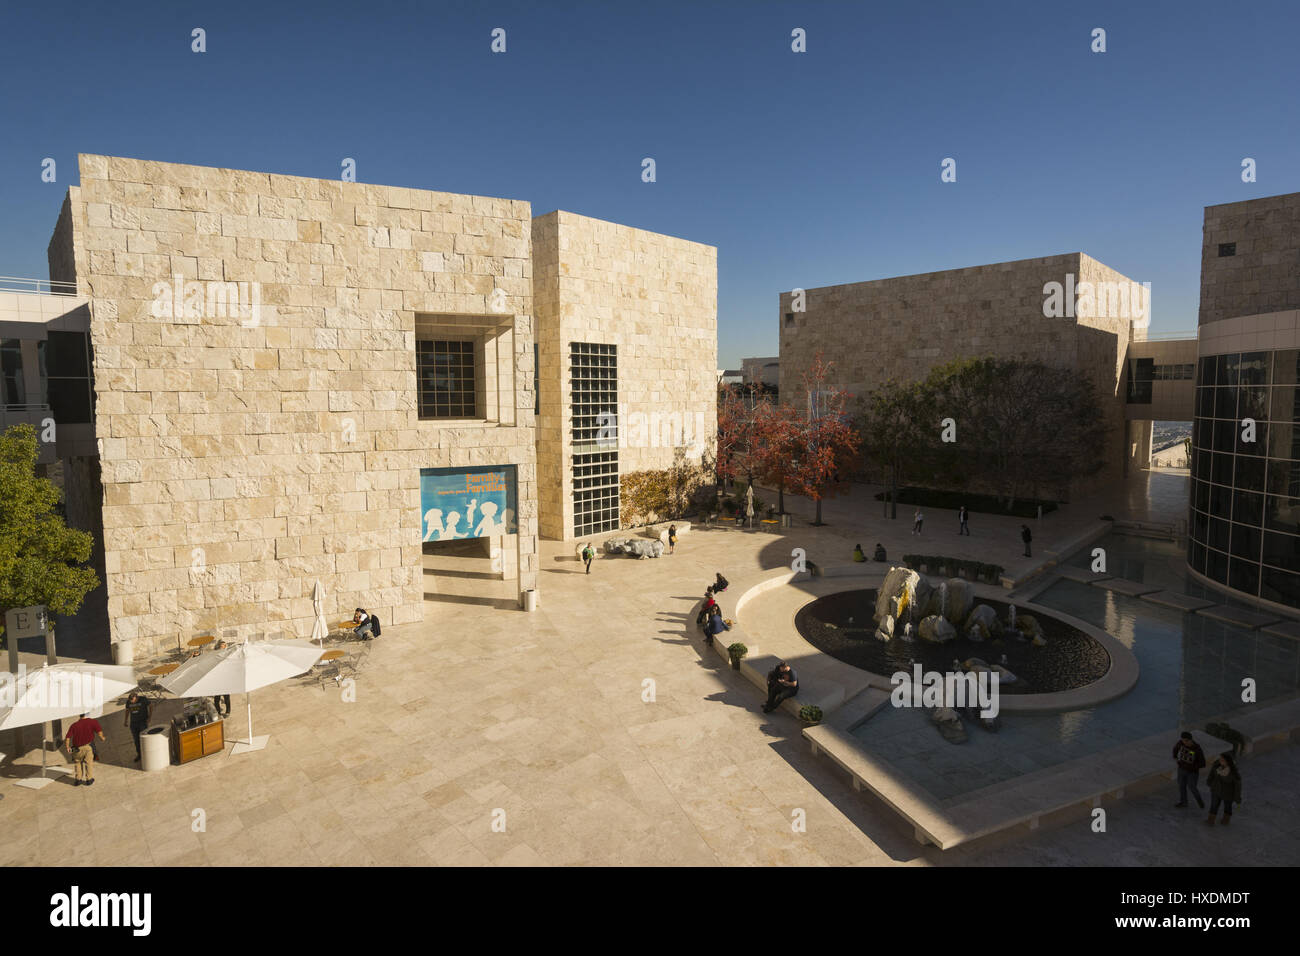 California, Los Angeles, Getty Center exterior and grounds - Stock Image